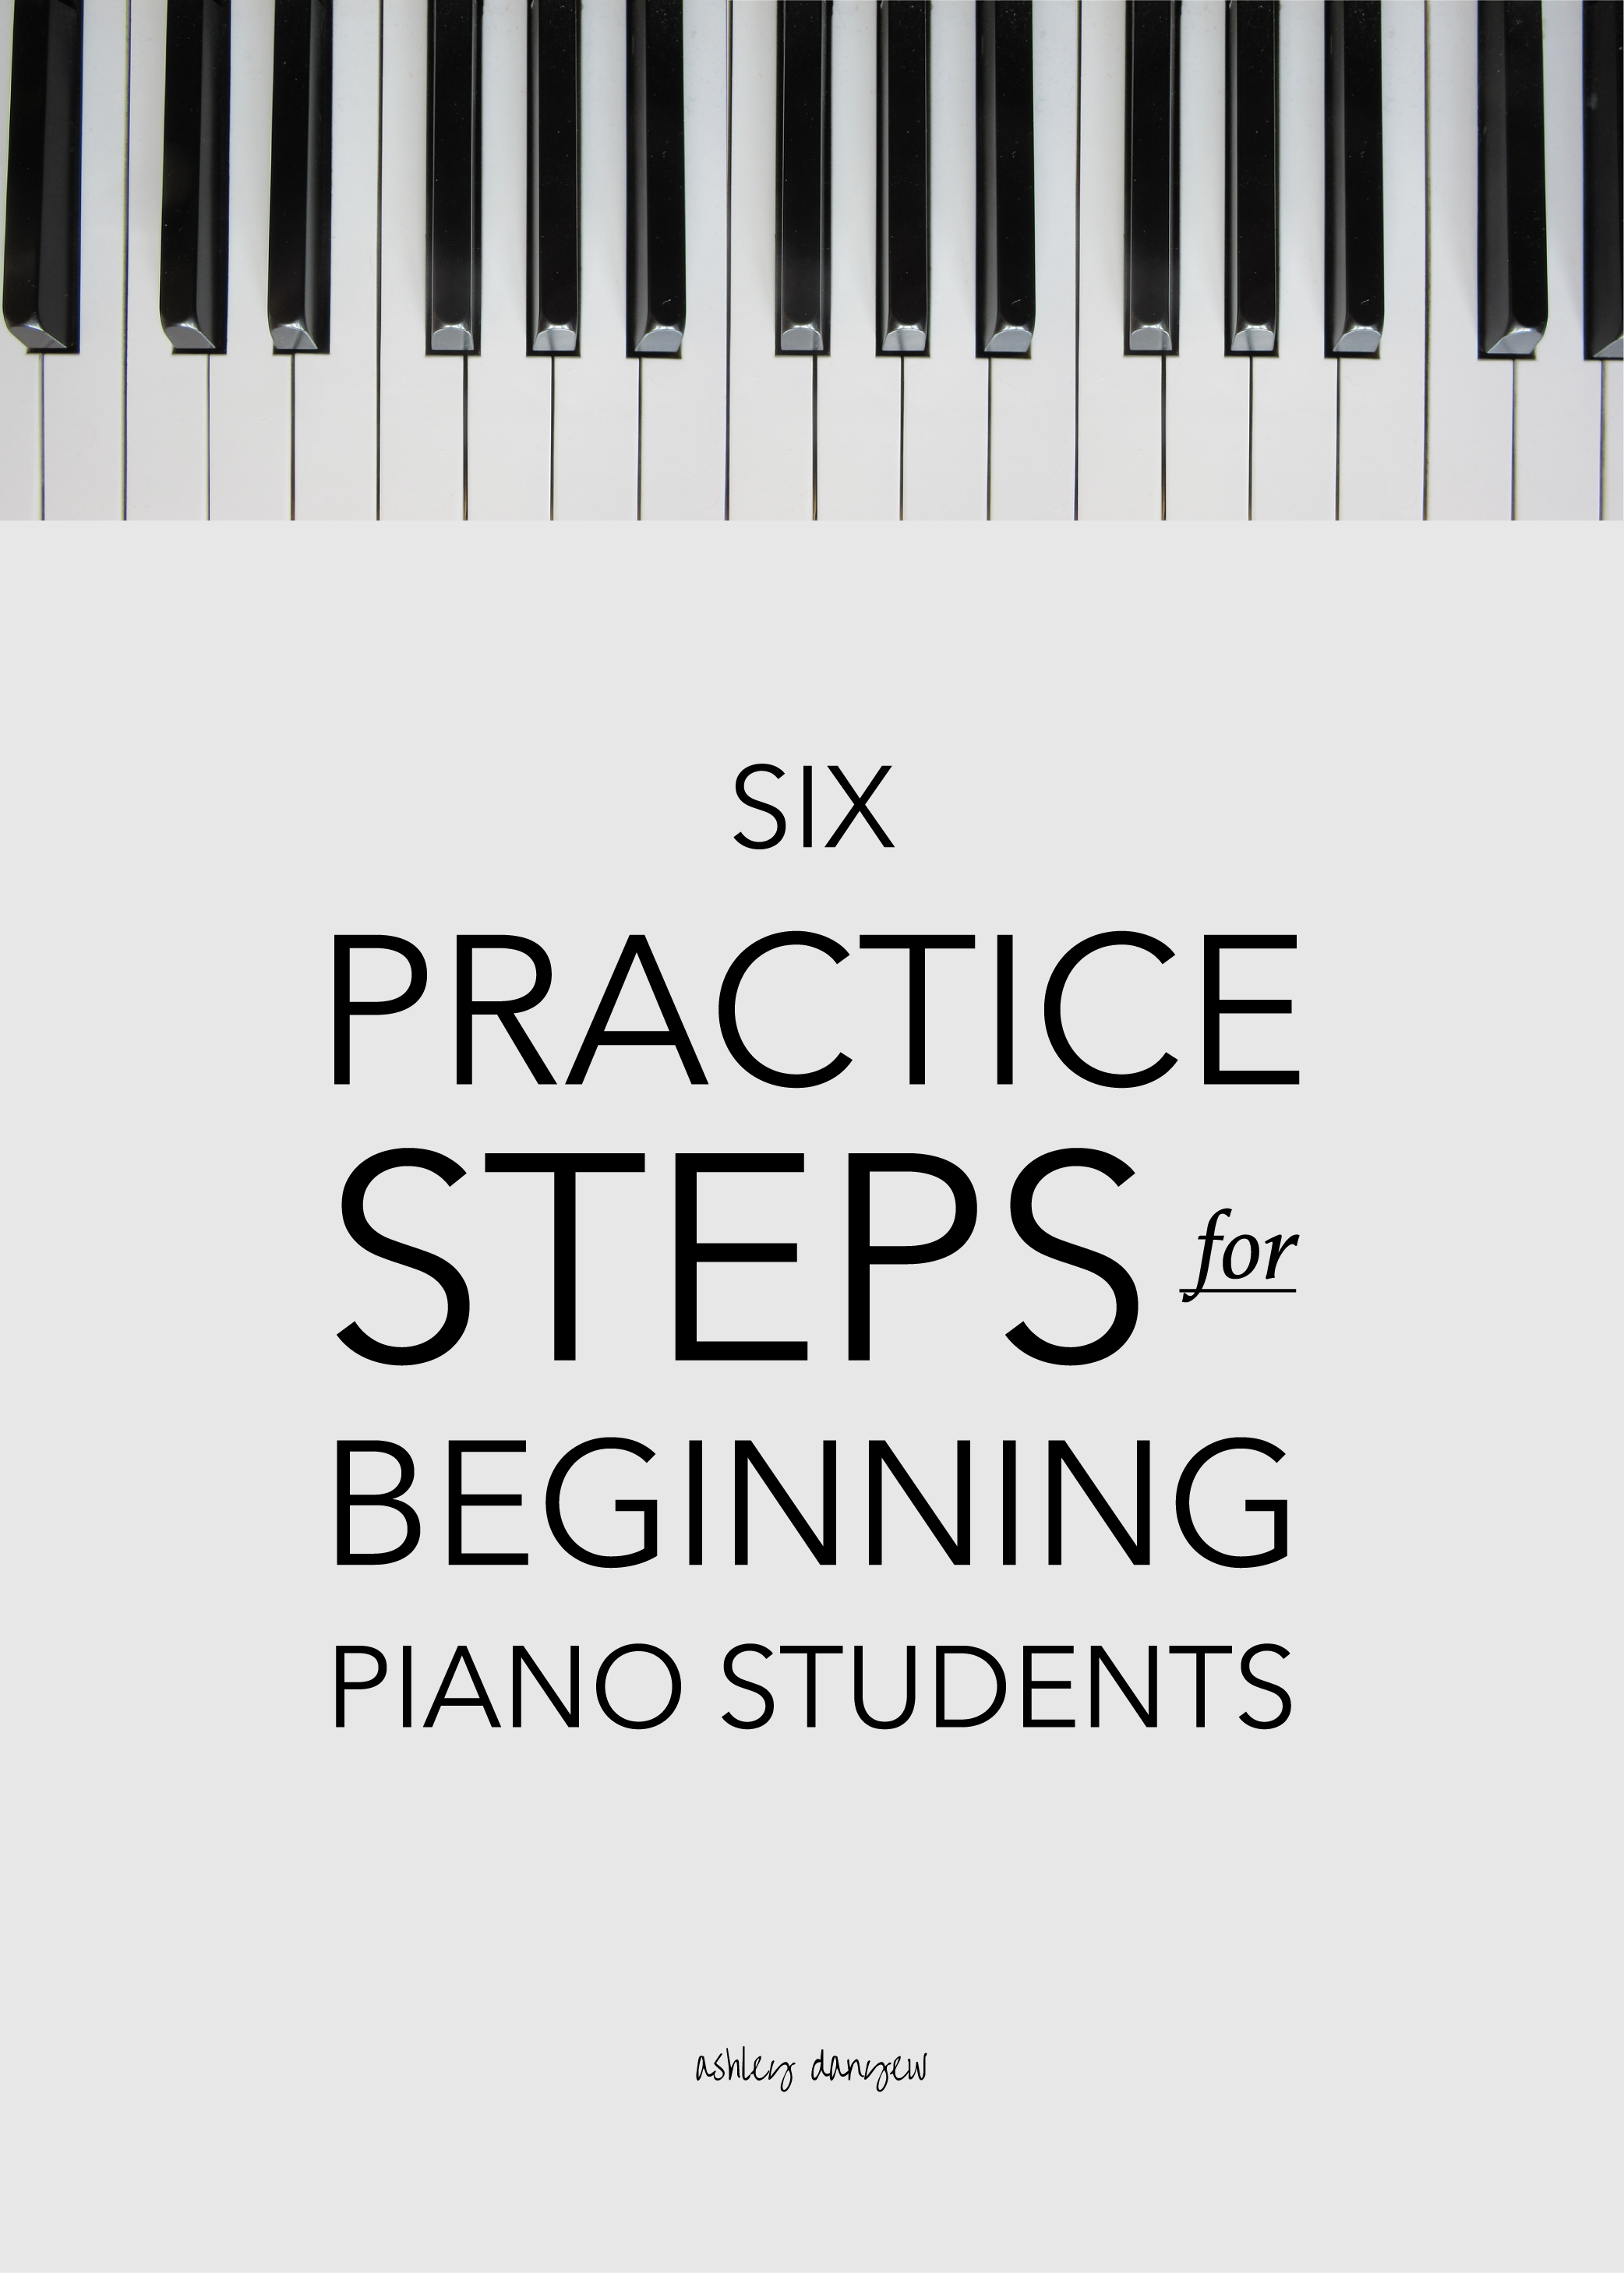 Six Practice Steps for Beginning Piano Students-24.png